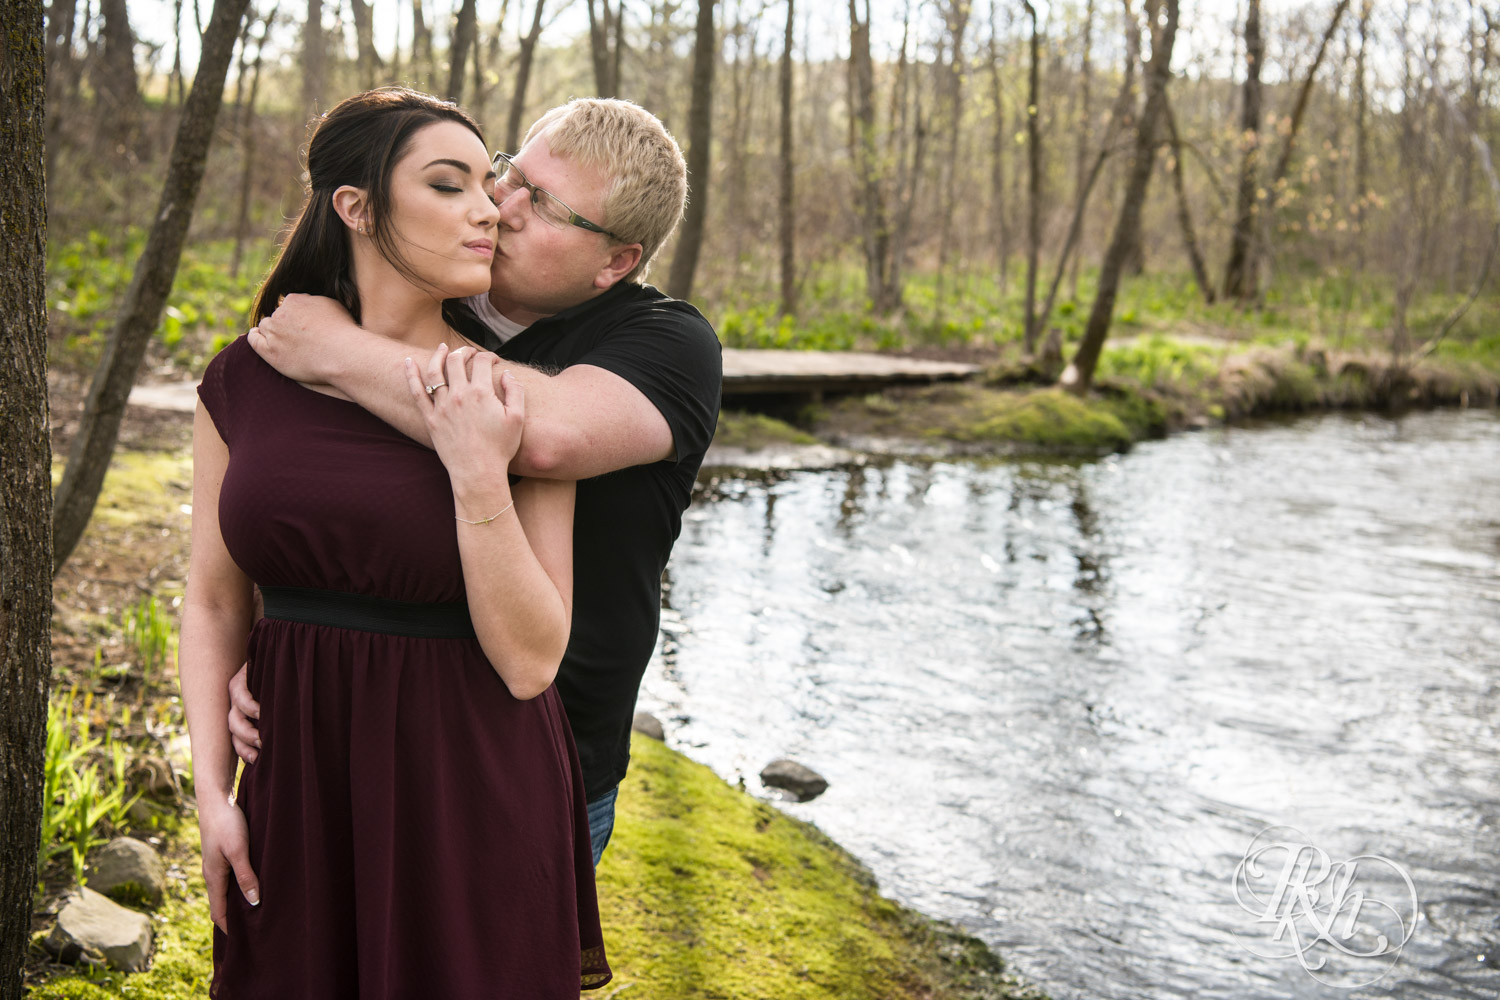 Chelsey & Erik - Minnesota Engagement Photography - Creekside Farm and Events - Rush City - RKH Images  (5 of 18).jpg